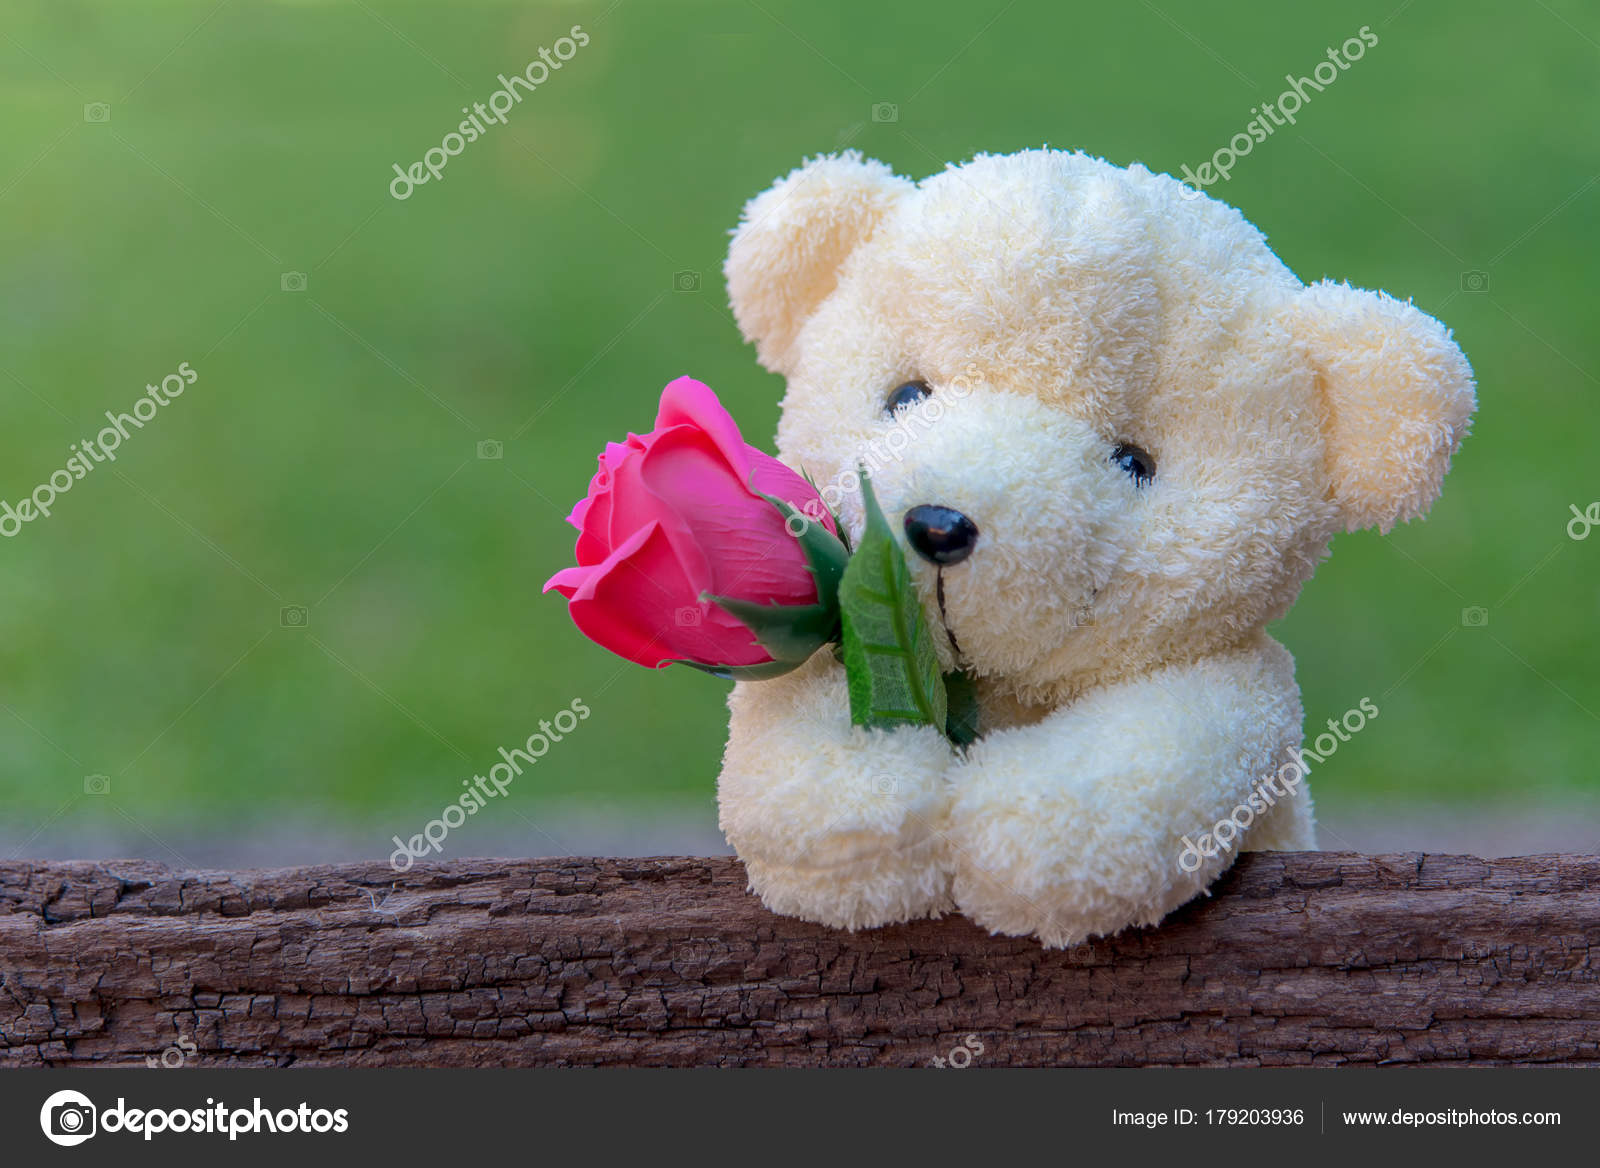 cute teddy bear clutching red rose its arms wooden background